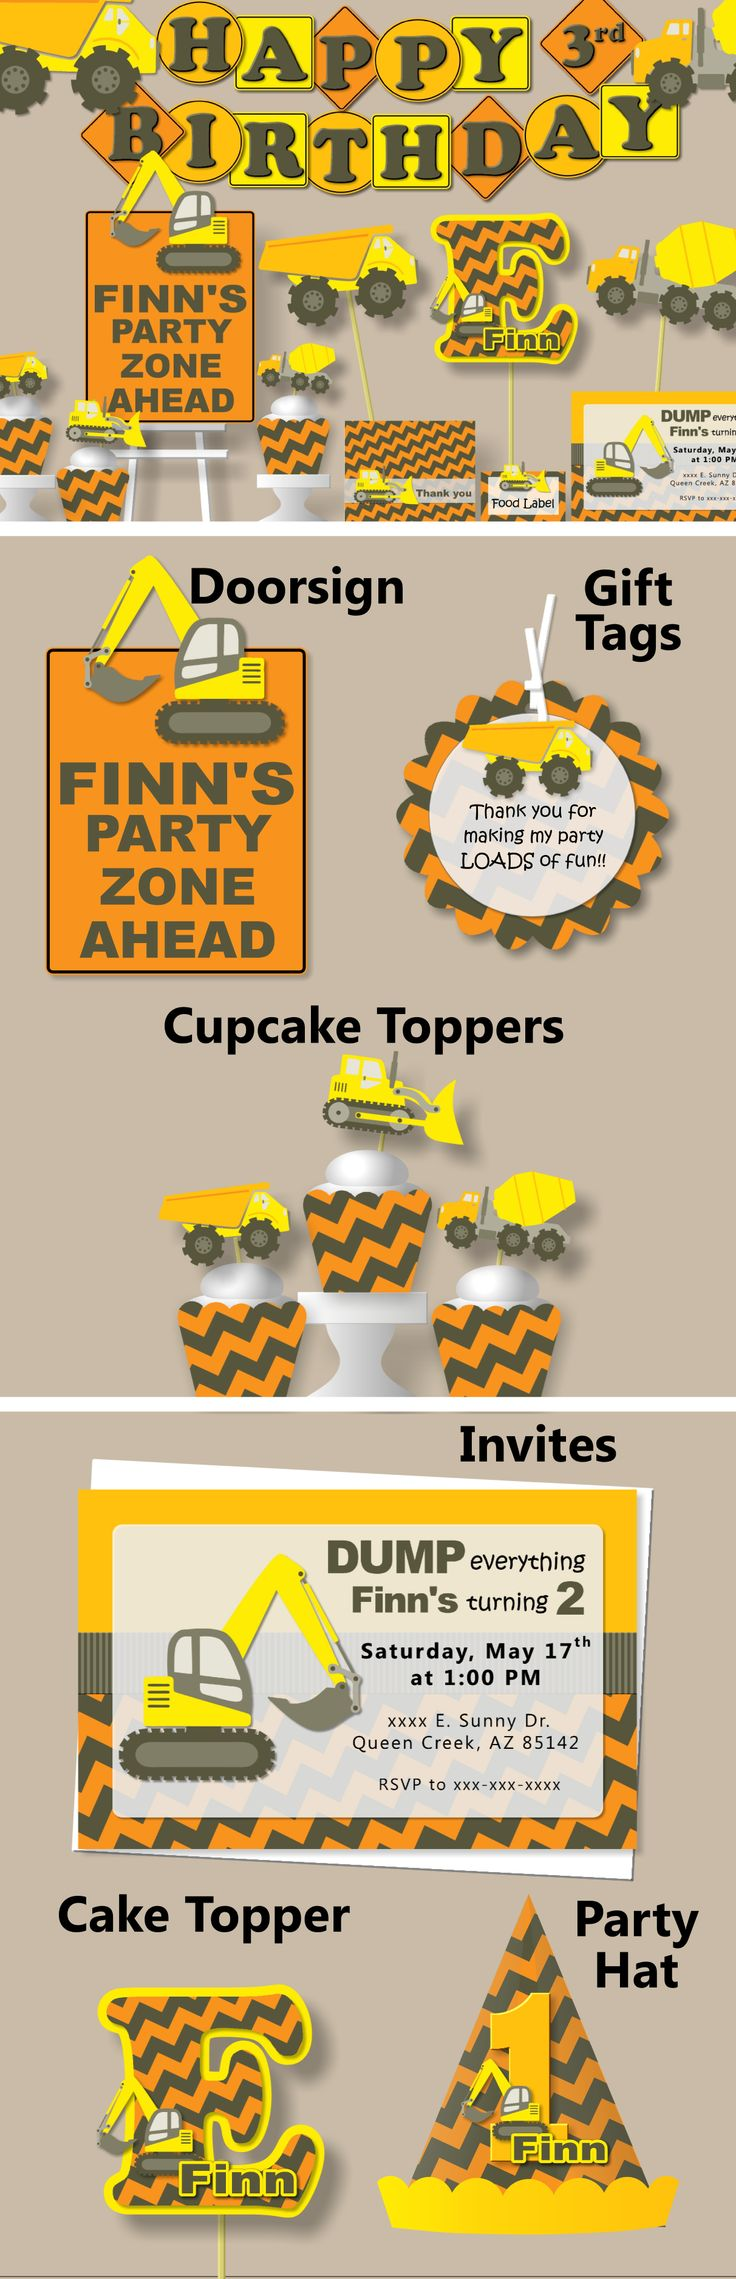 Construction birthday party invitations and dump truck party